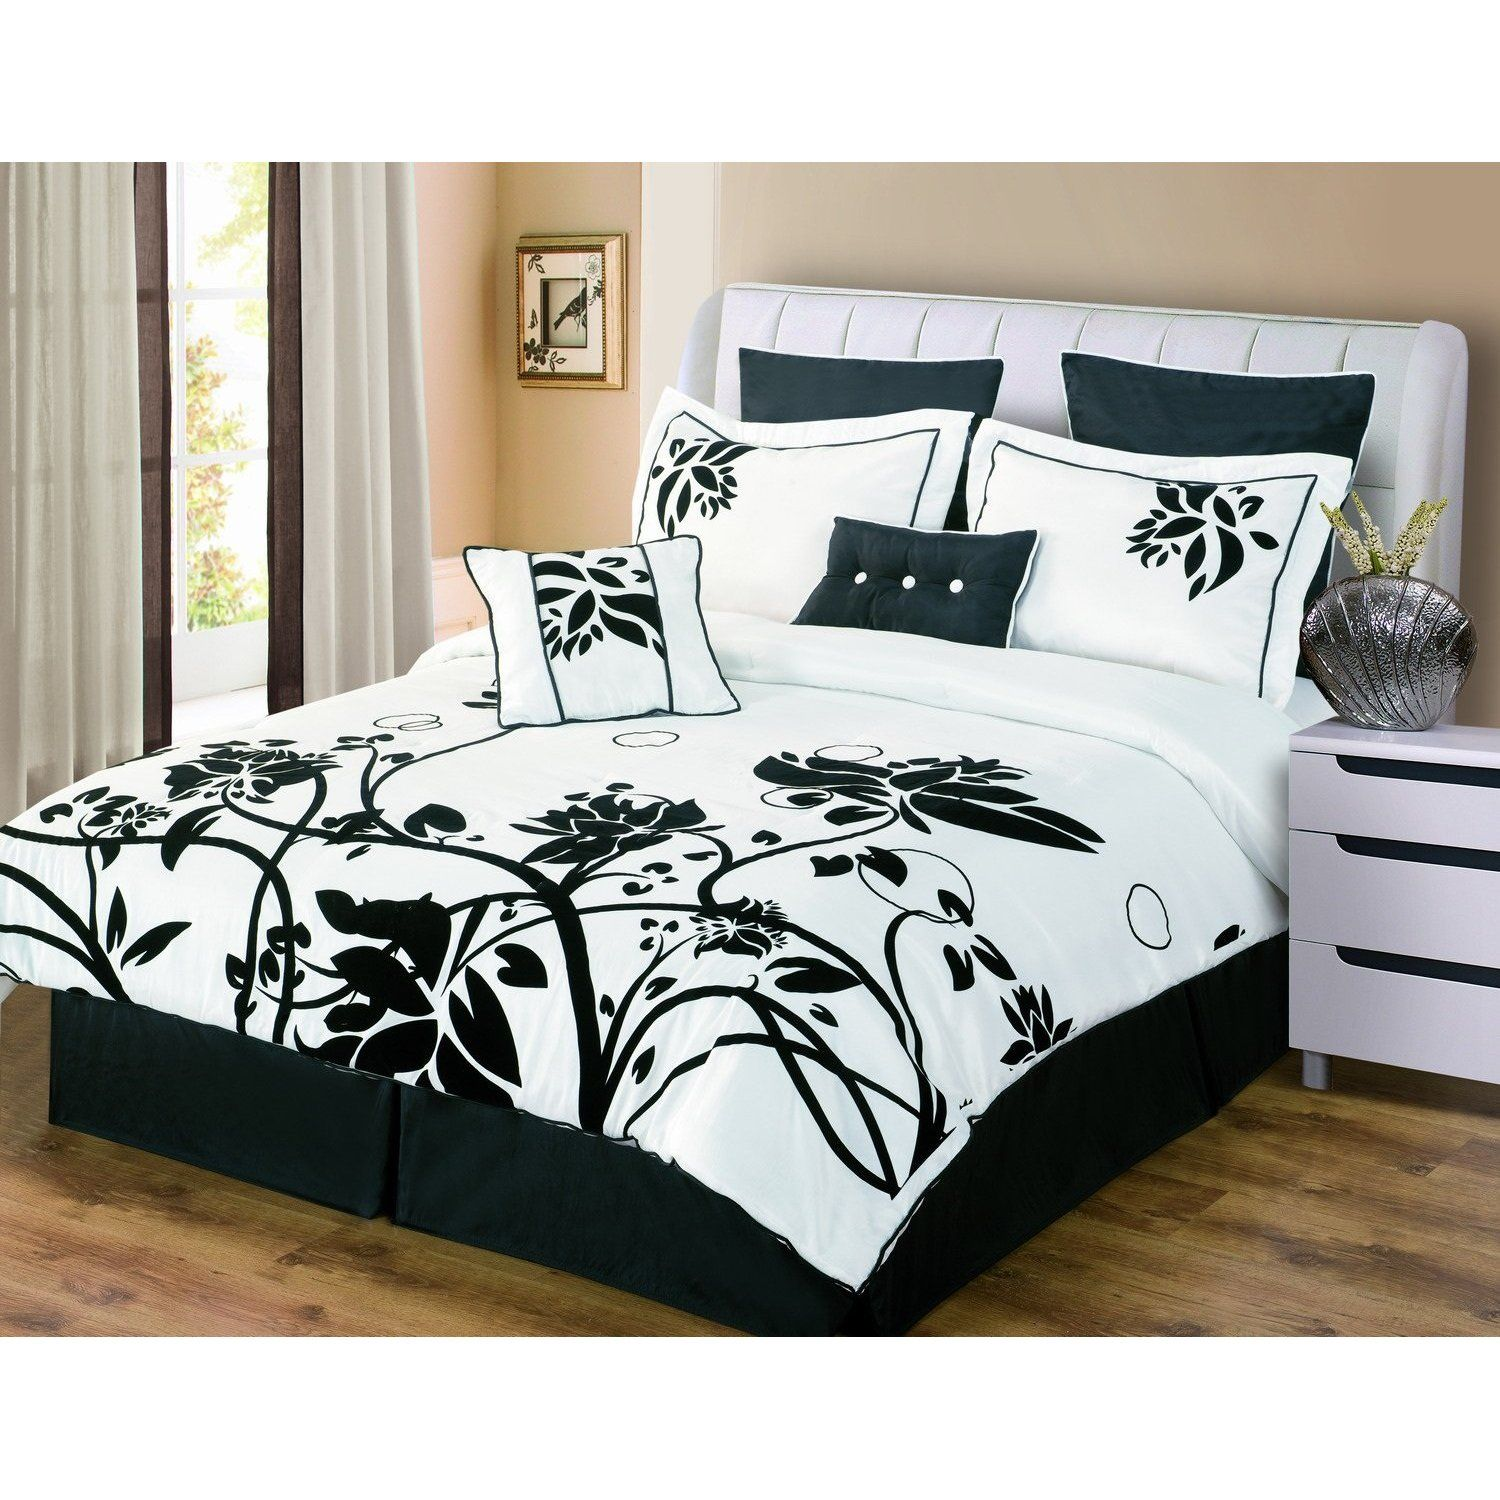 Genial Luxury Home Chelsea 8 Piece Flocked Comforter Set In Black / White: Bedding